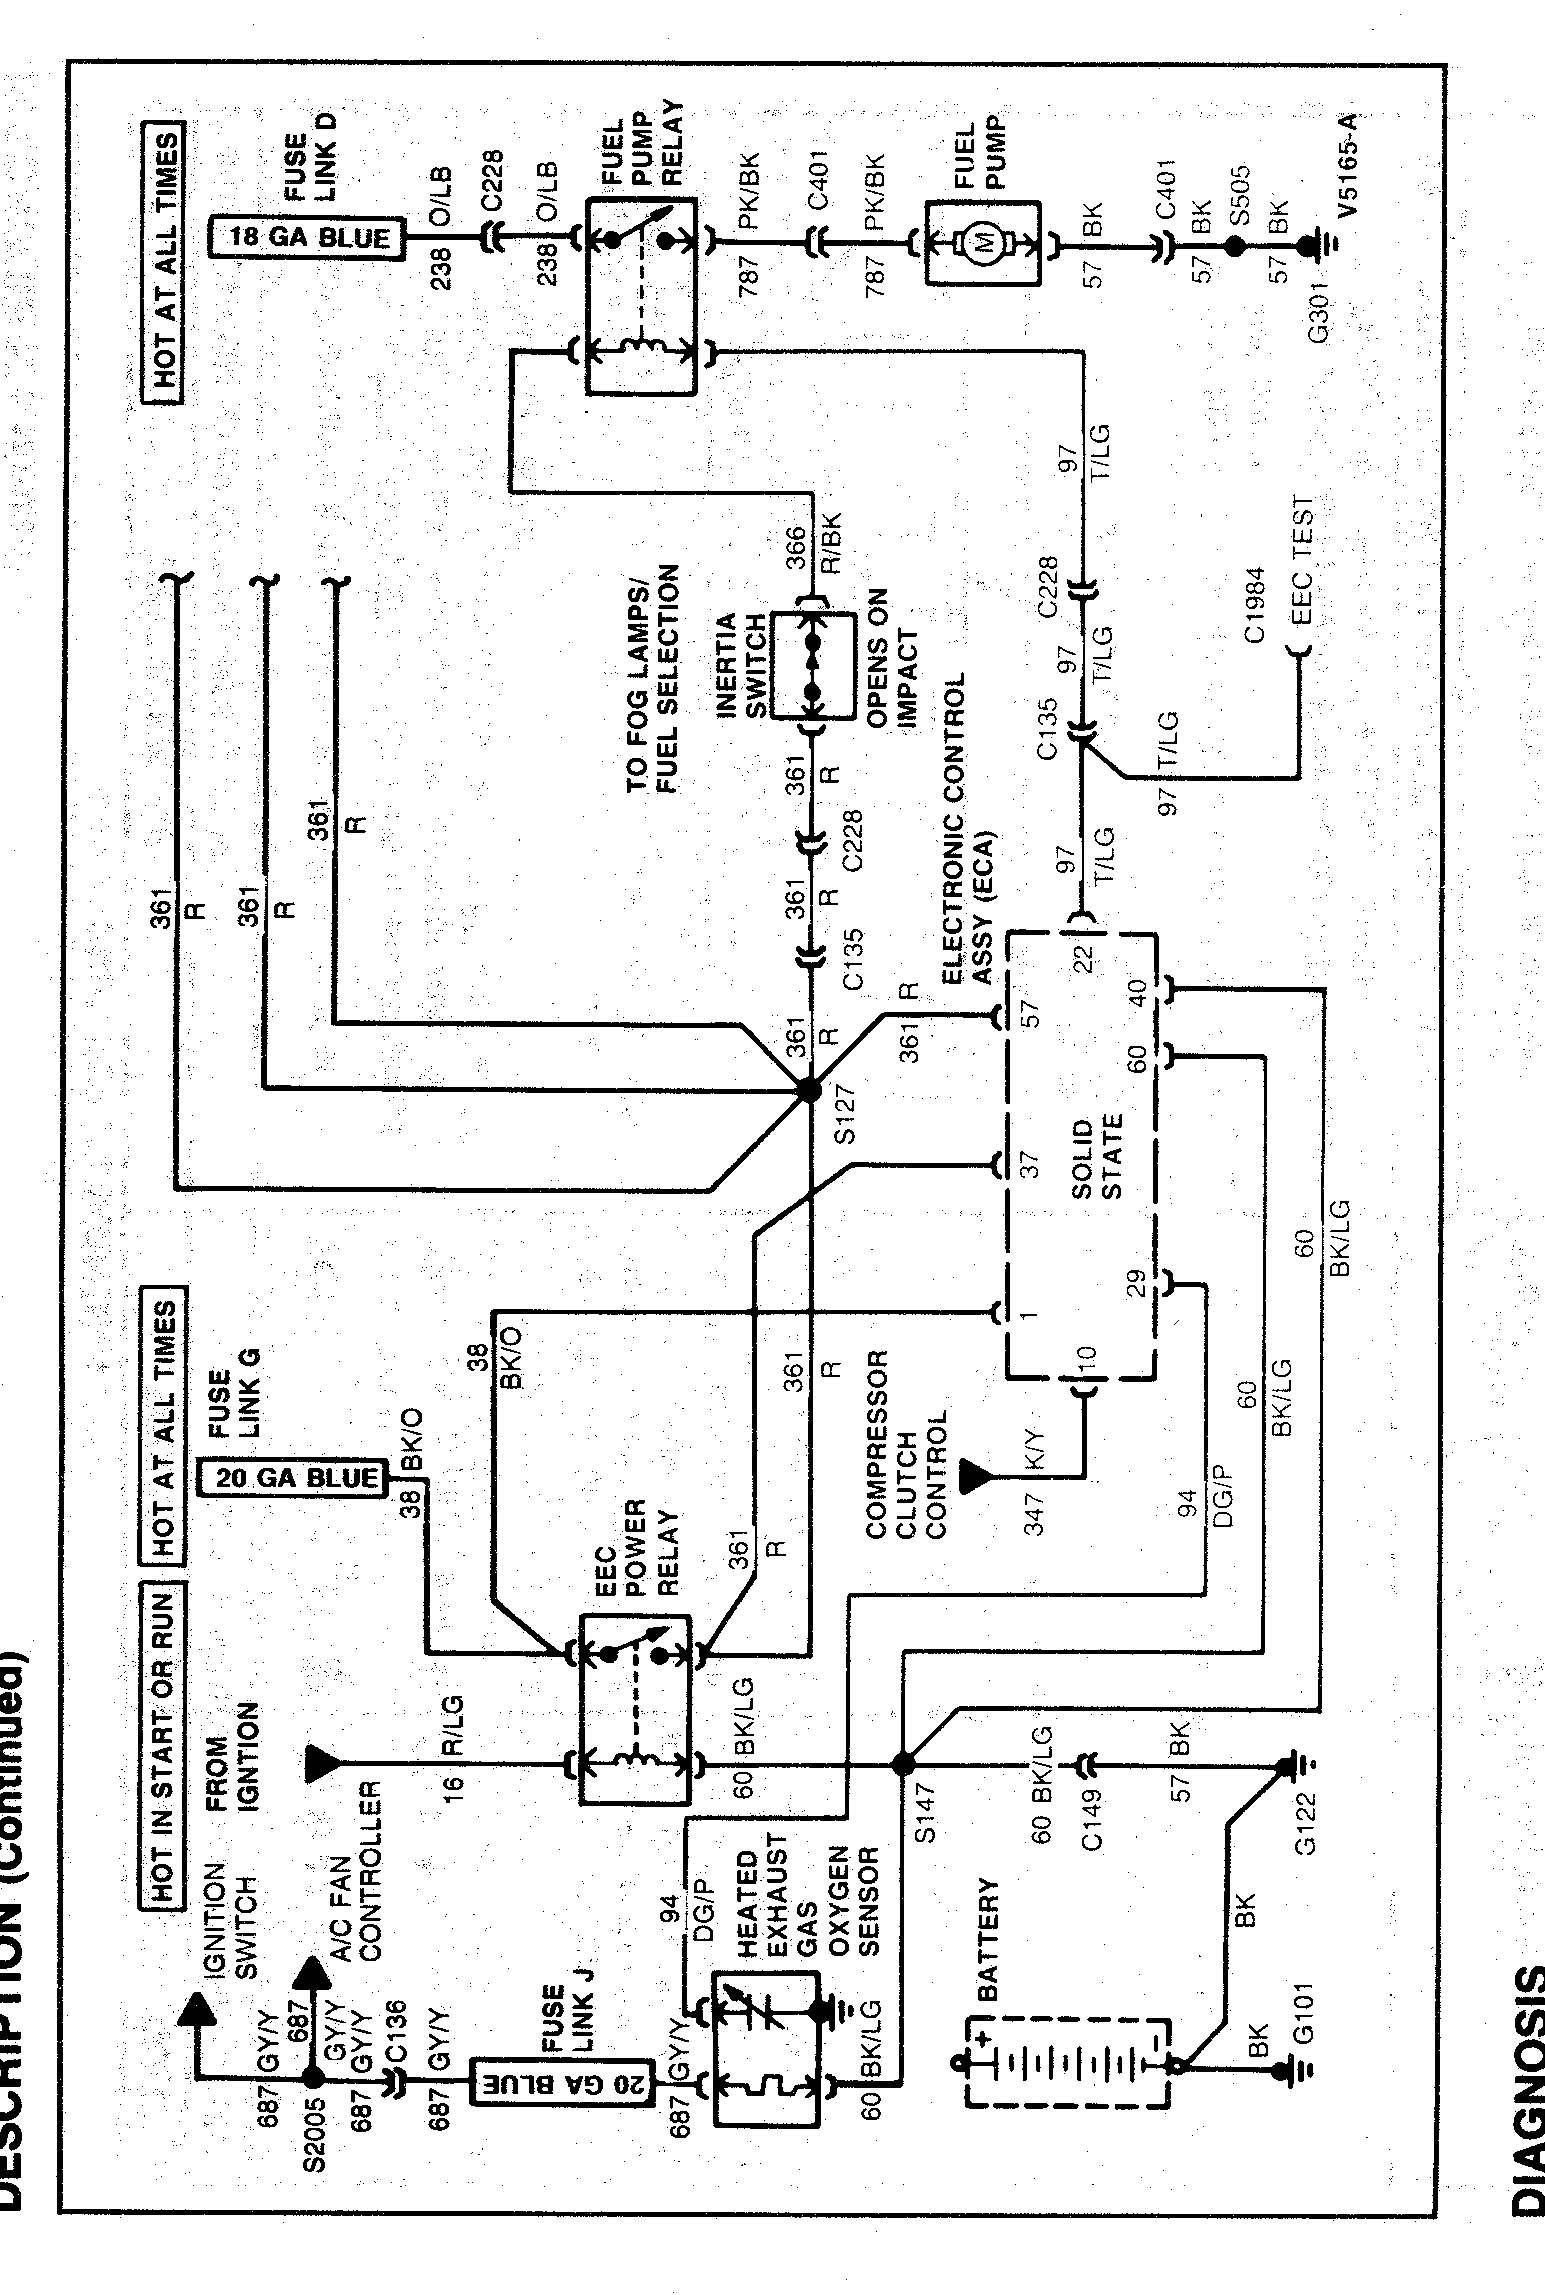 Wiring Diagram Gillig Phantom